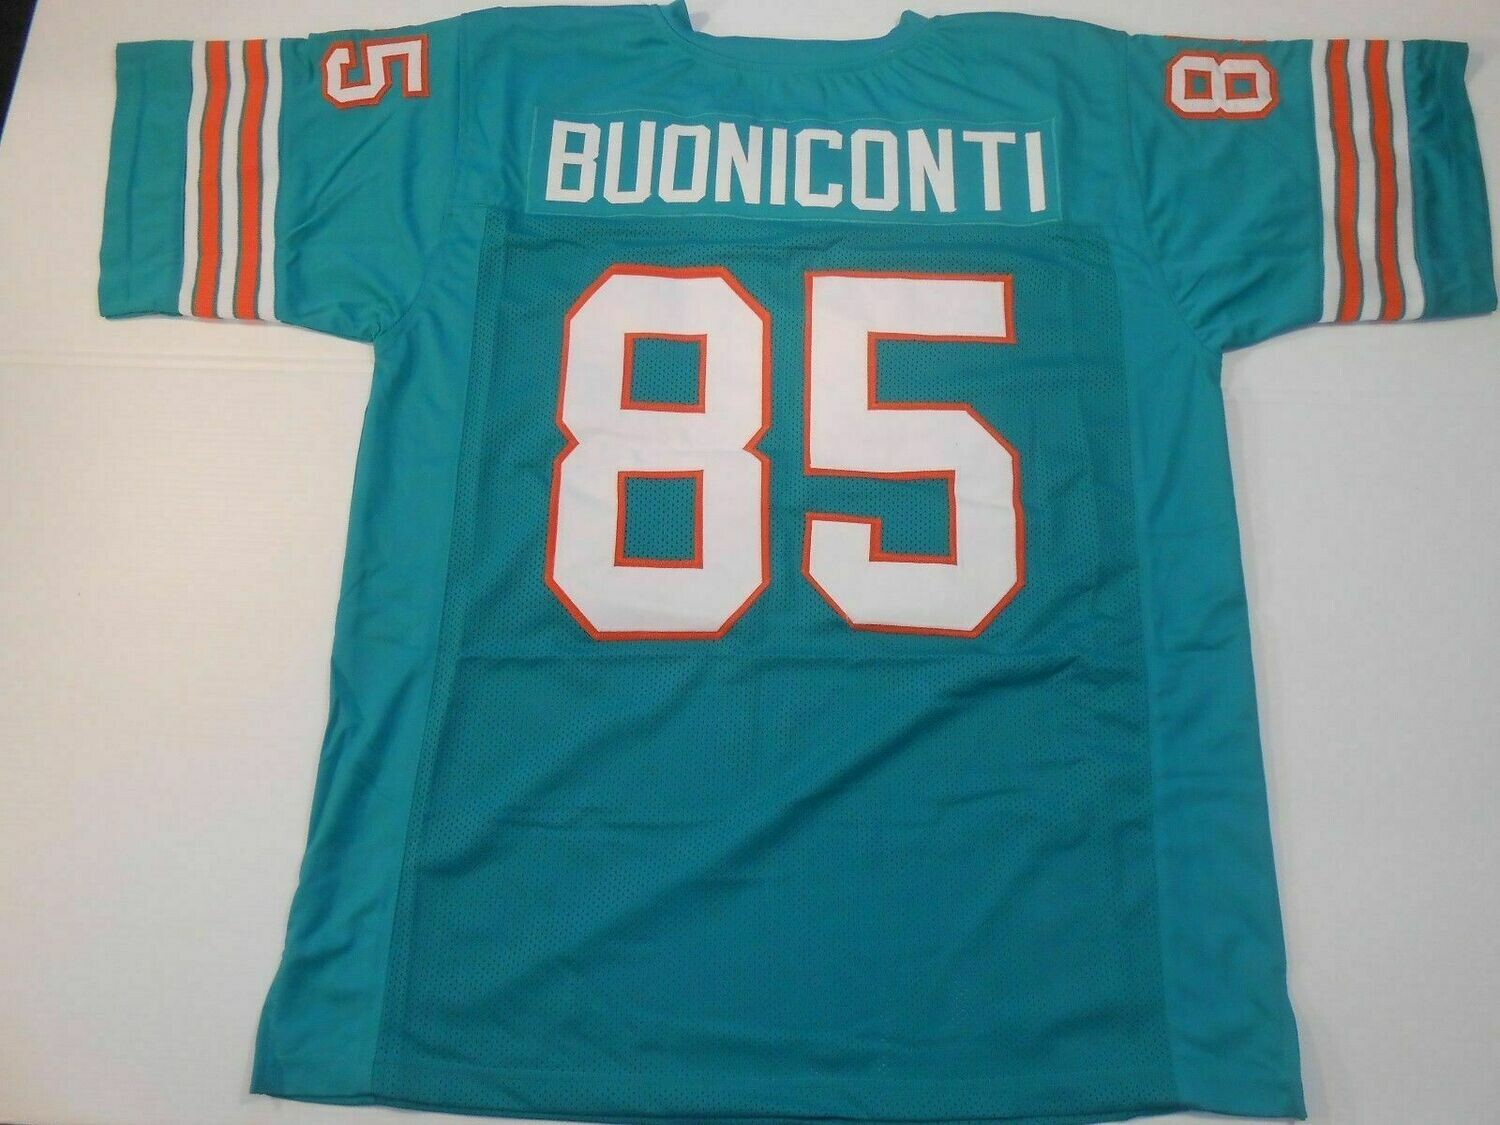 UNSIGNED CUSTOM Sewn Stitched Nick Buoniconti Teal Jersey